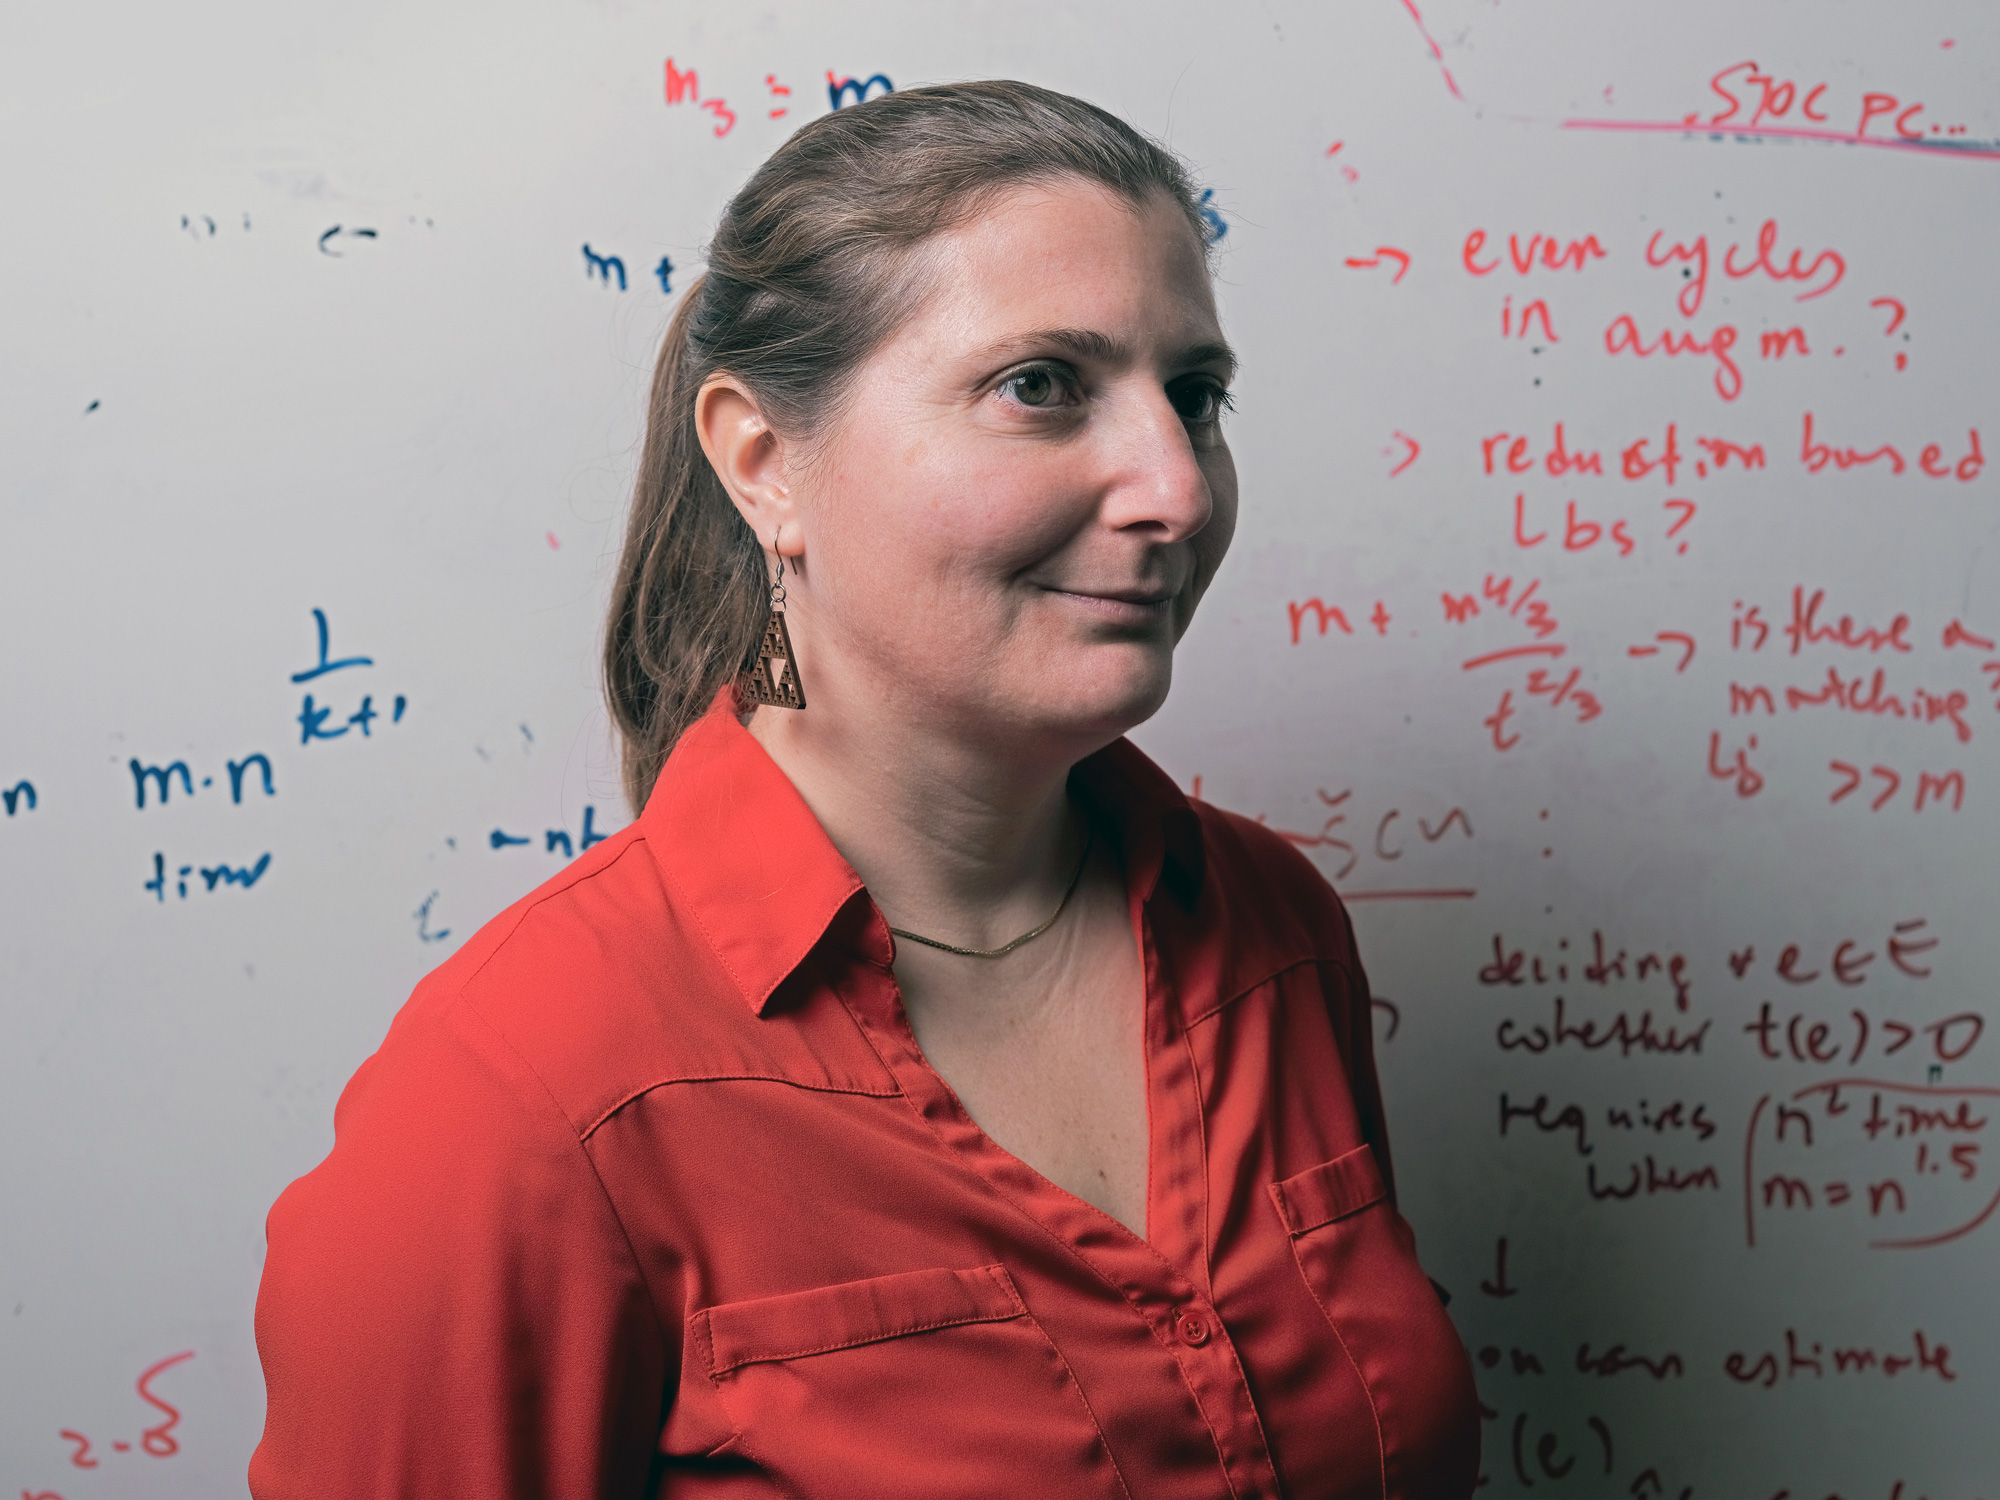 A color photo Virginia Williams in a red shirt in front of a whiteboard, and a color photo of Josh Alman in a gray shirt with a gray background